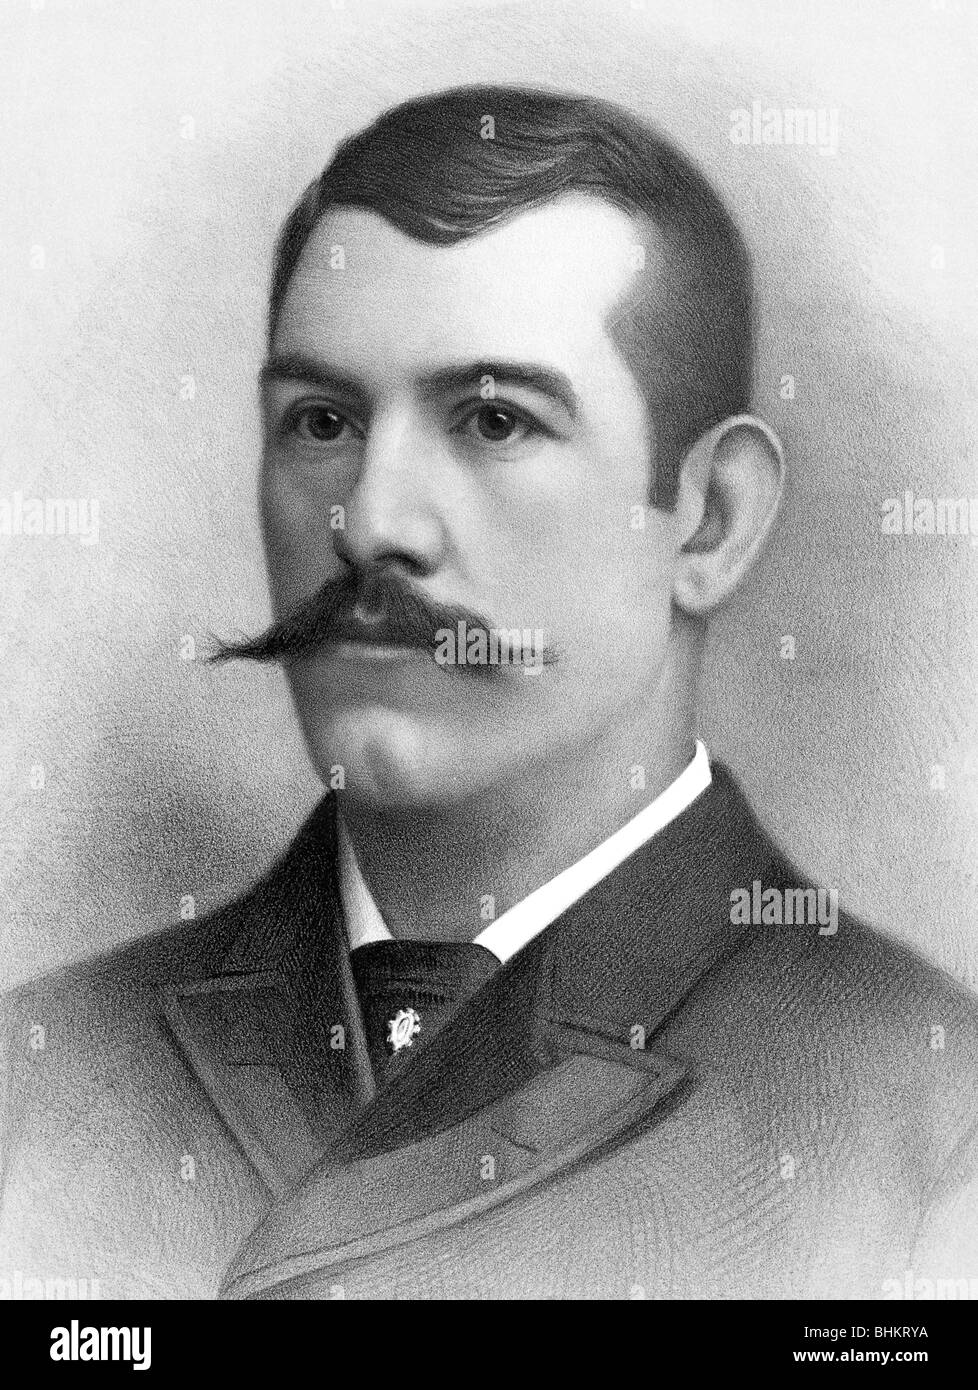 Portrait c1880s of John L Sullivan (1858 - 1918) -  first heavyweight champion of gloved boxing + last bare knuckle - Stock Image